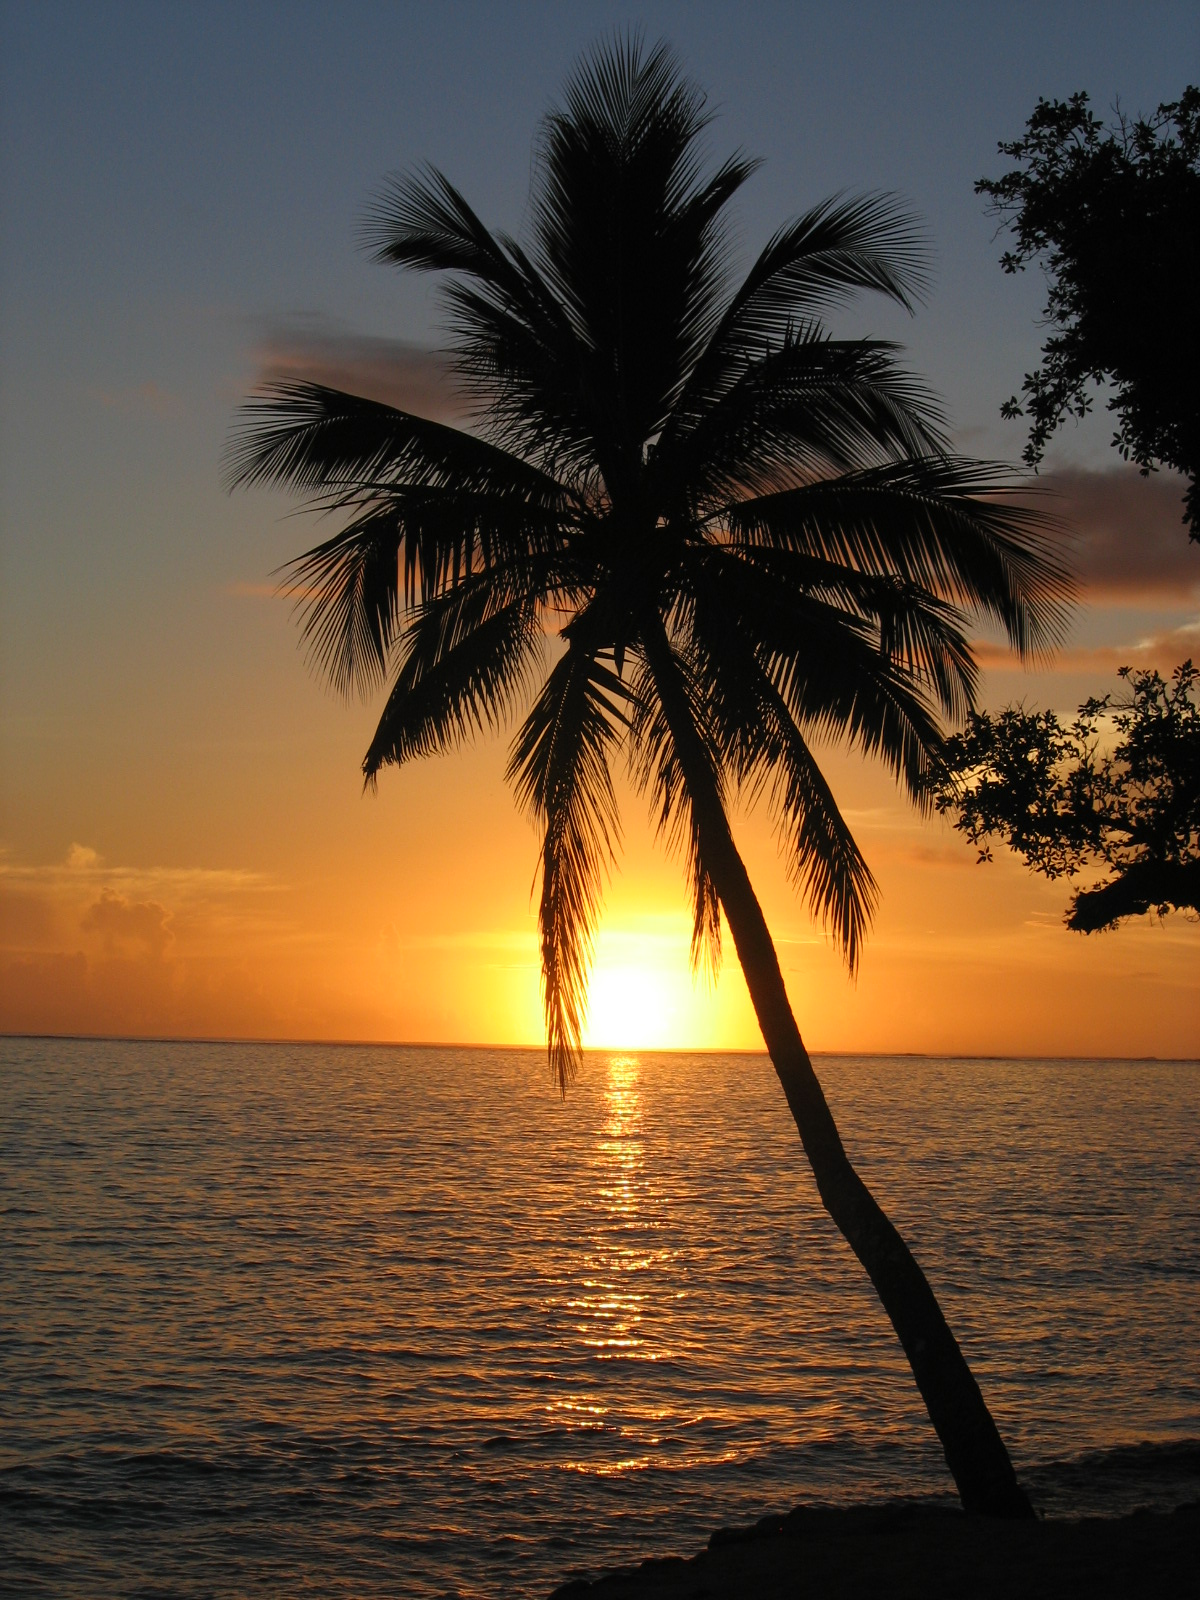 File:Sunset With Coconut Palm Tree, Fiji.jpg